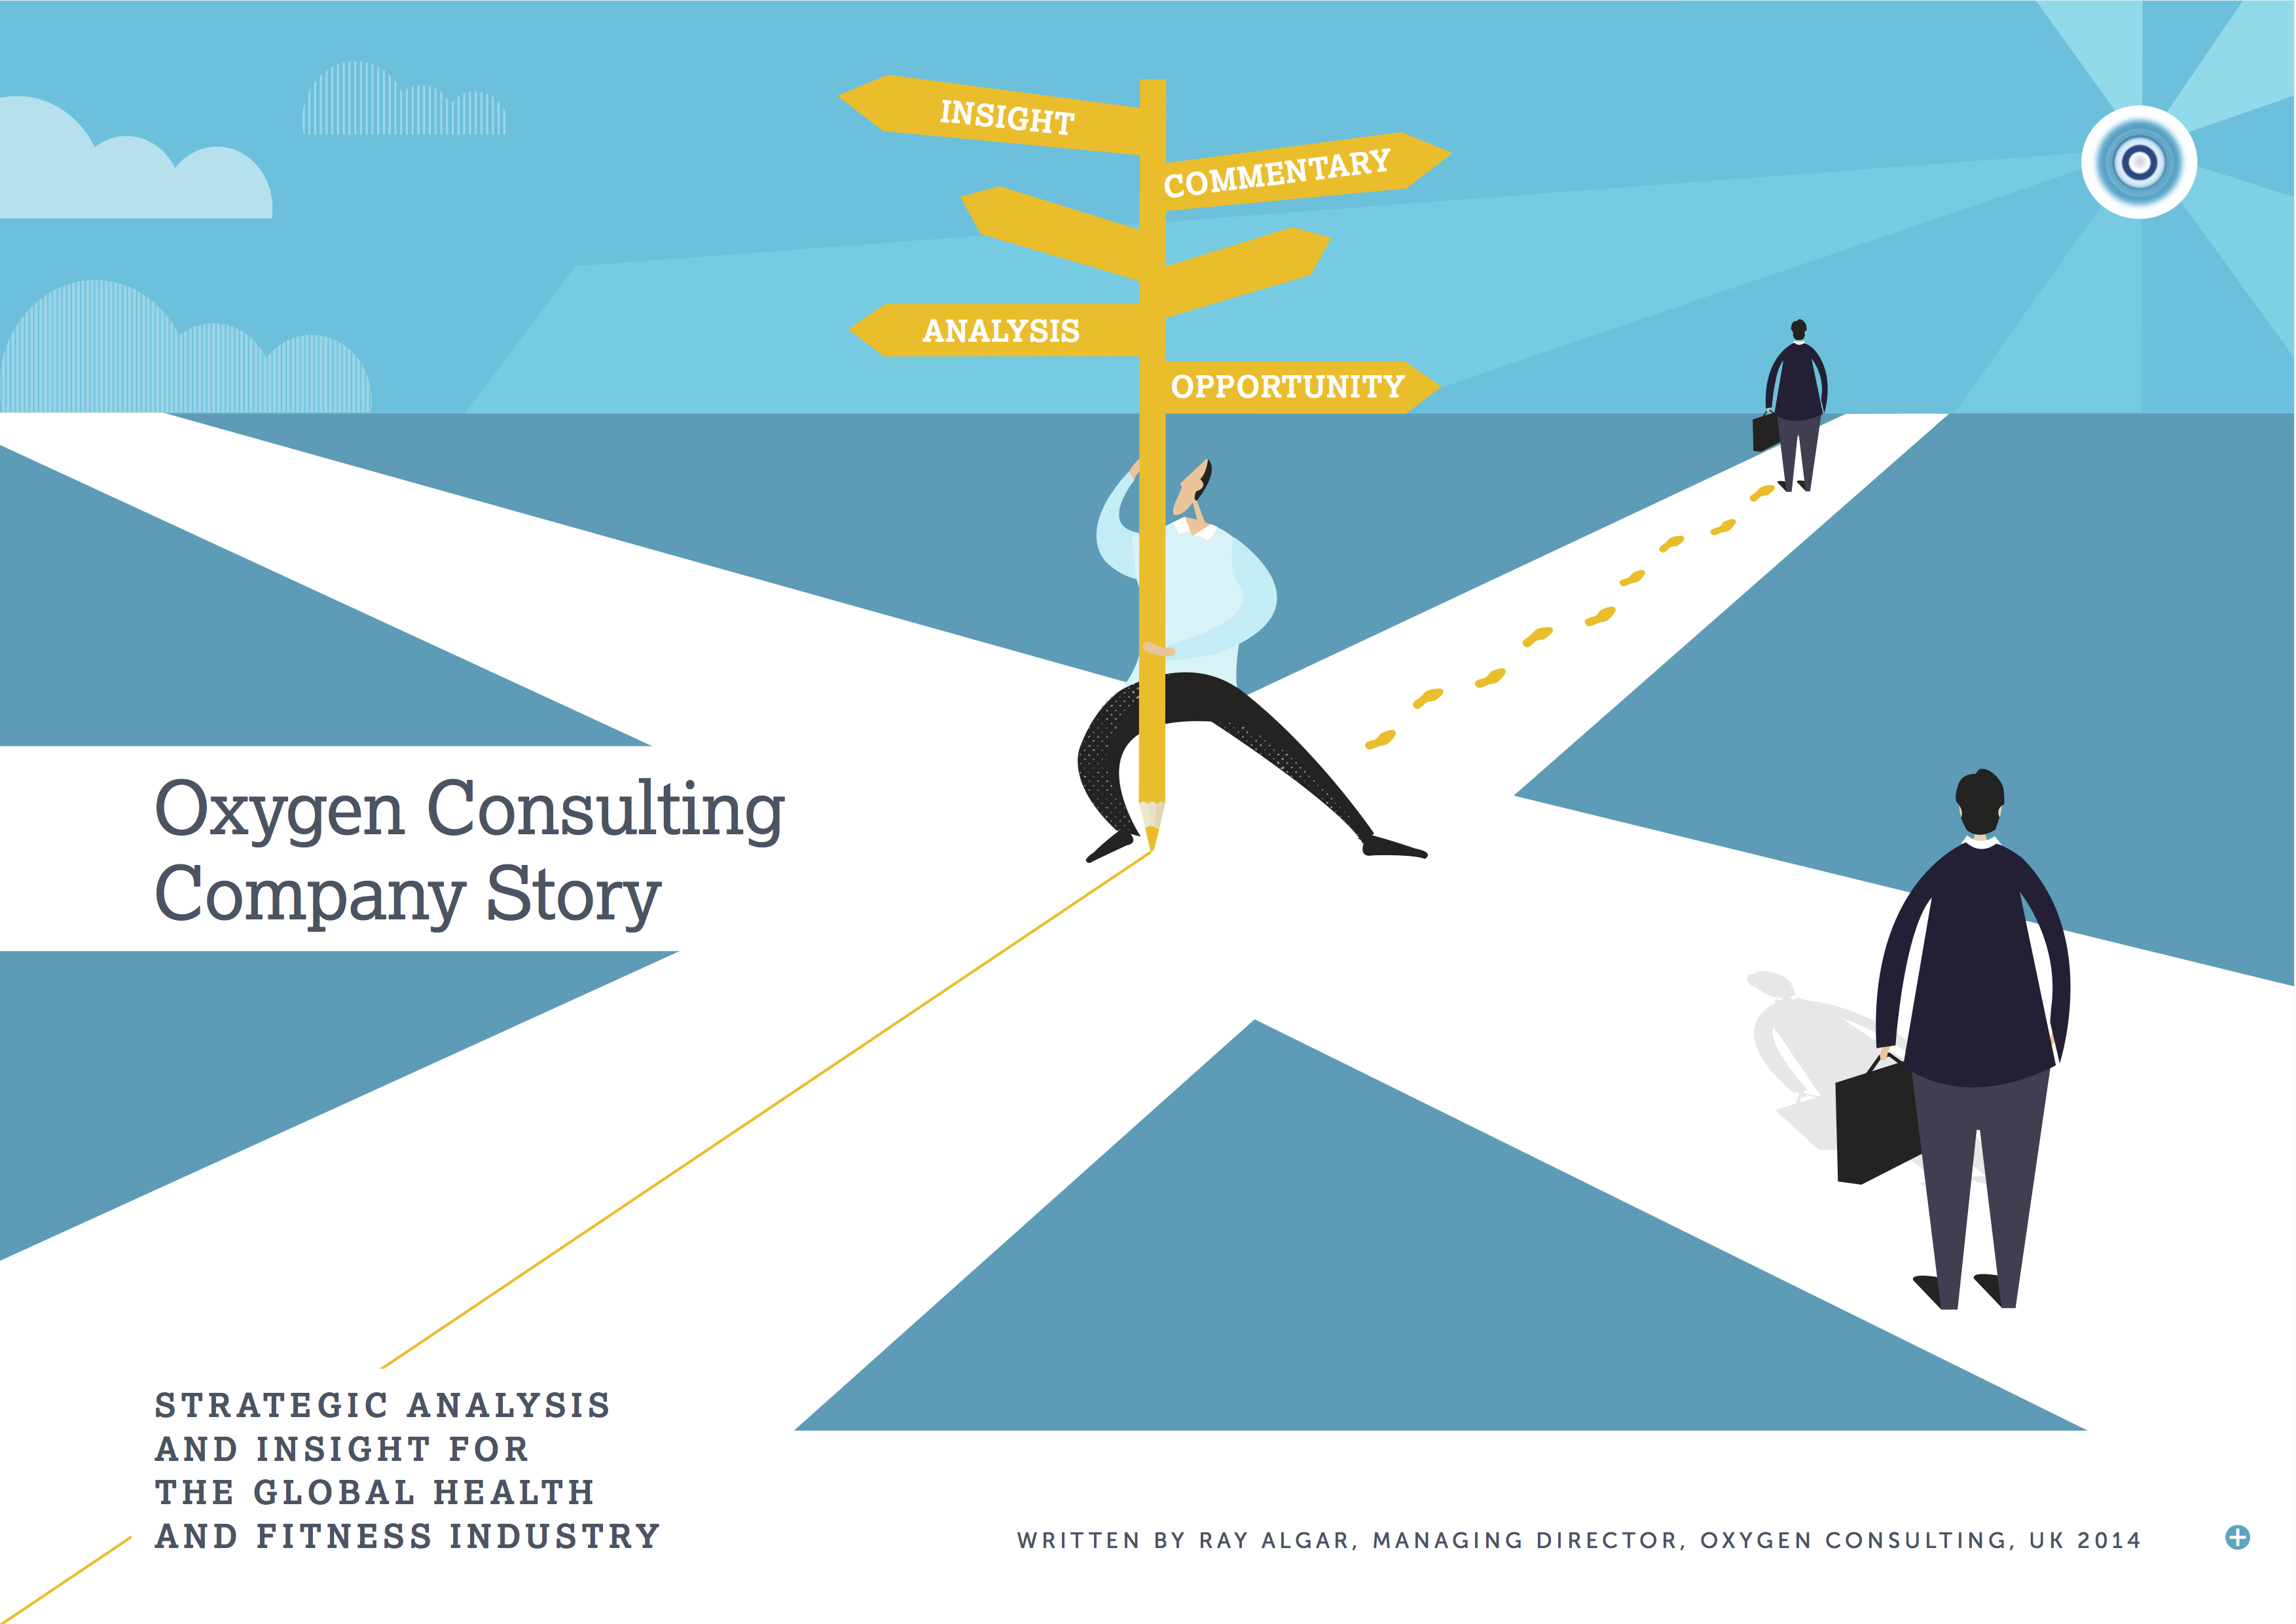 Oxygen Consulting | Business analyst to the health, fitness